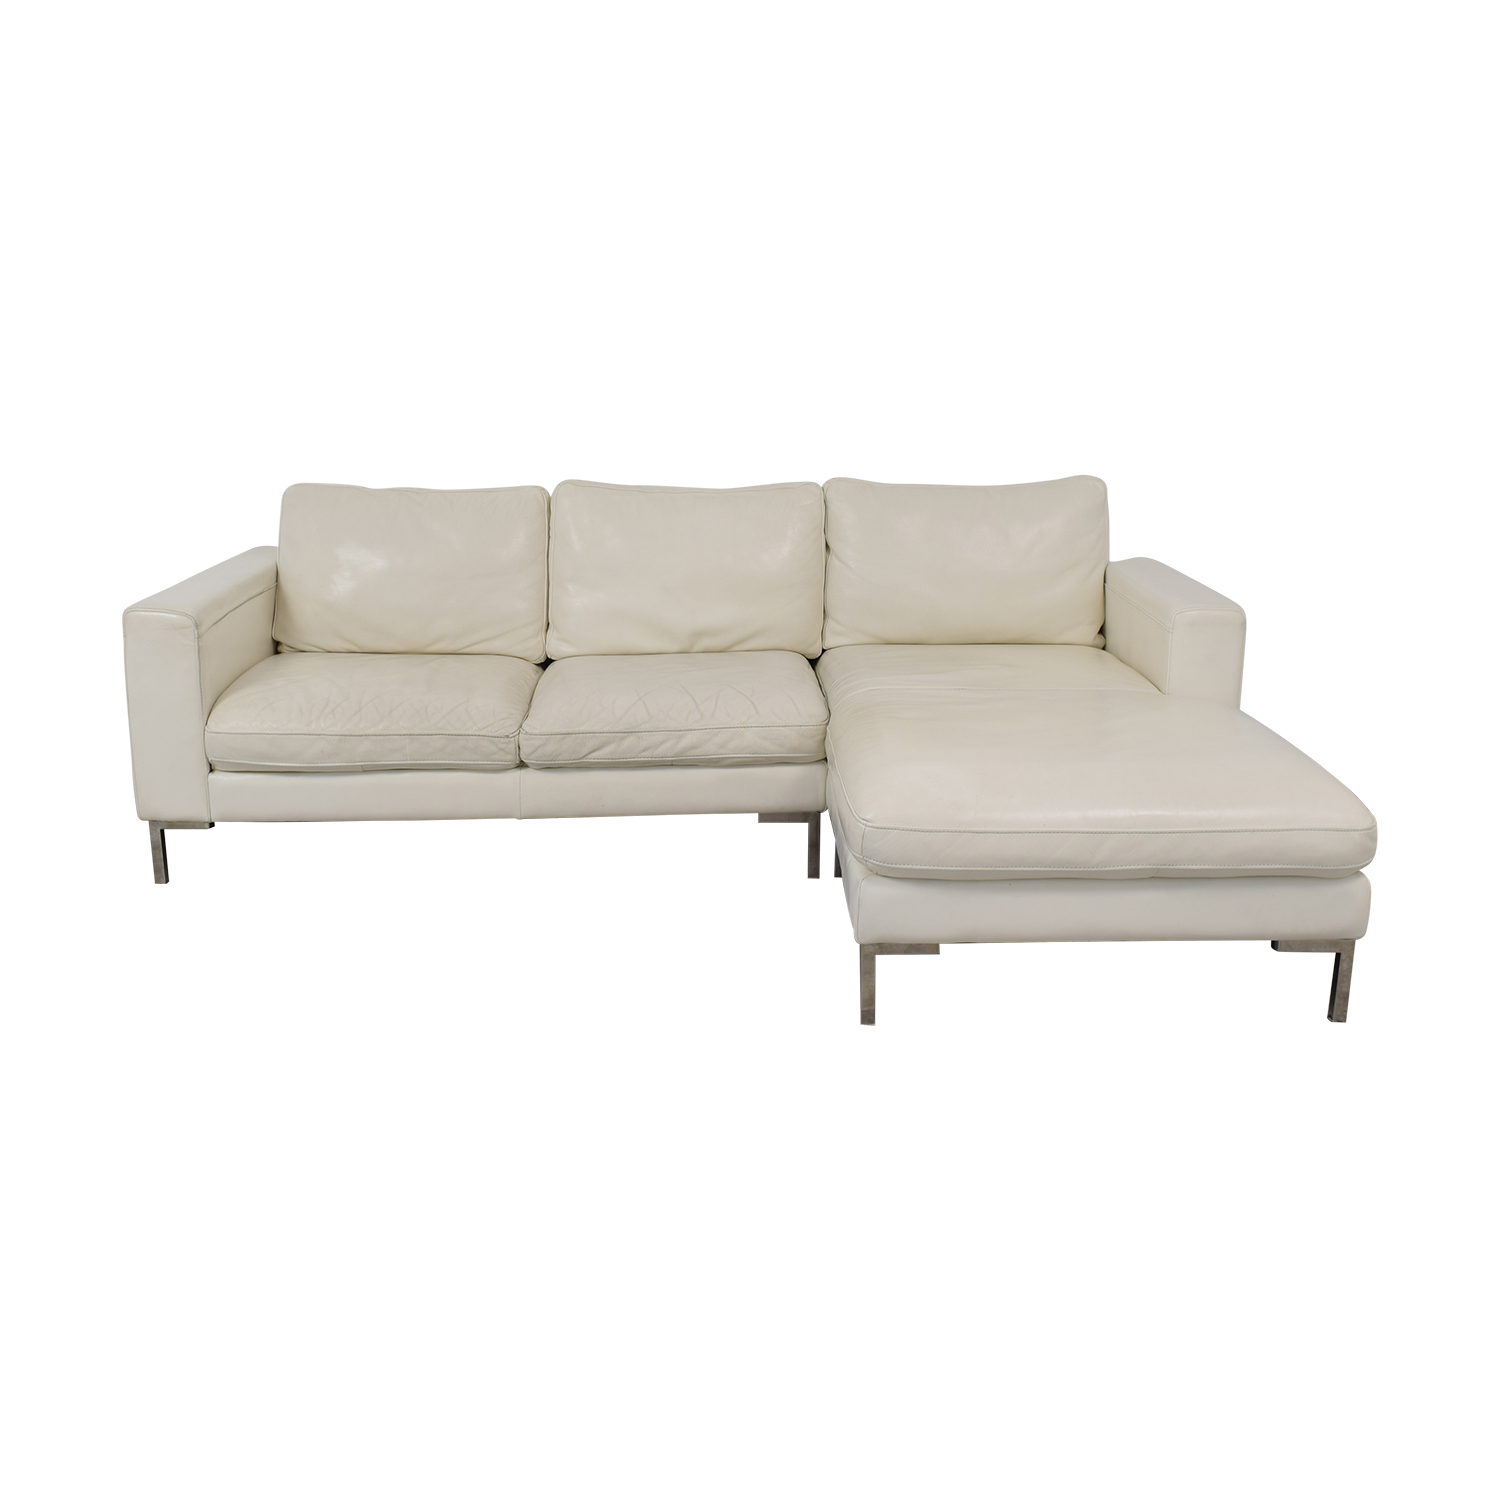 84% OFF - Modern Chaise Sectional Sofa / Sofas